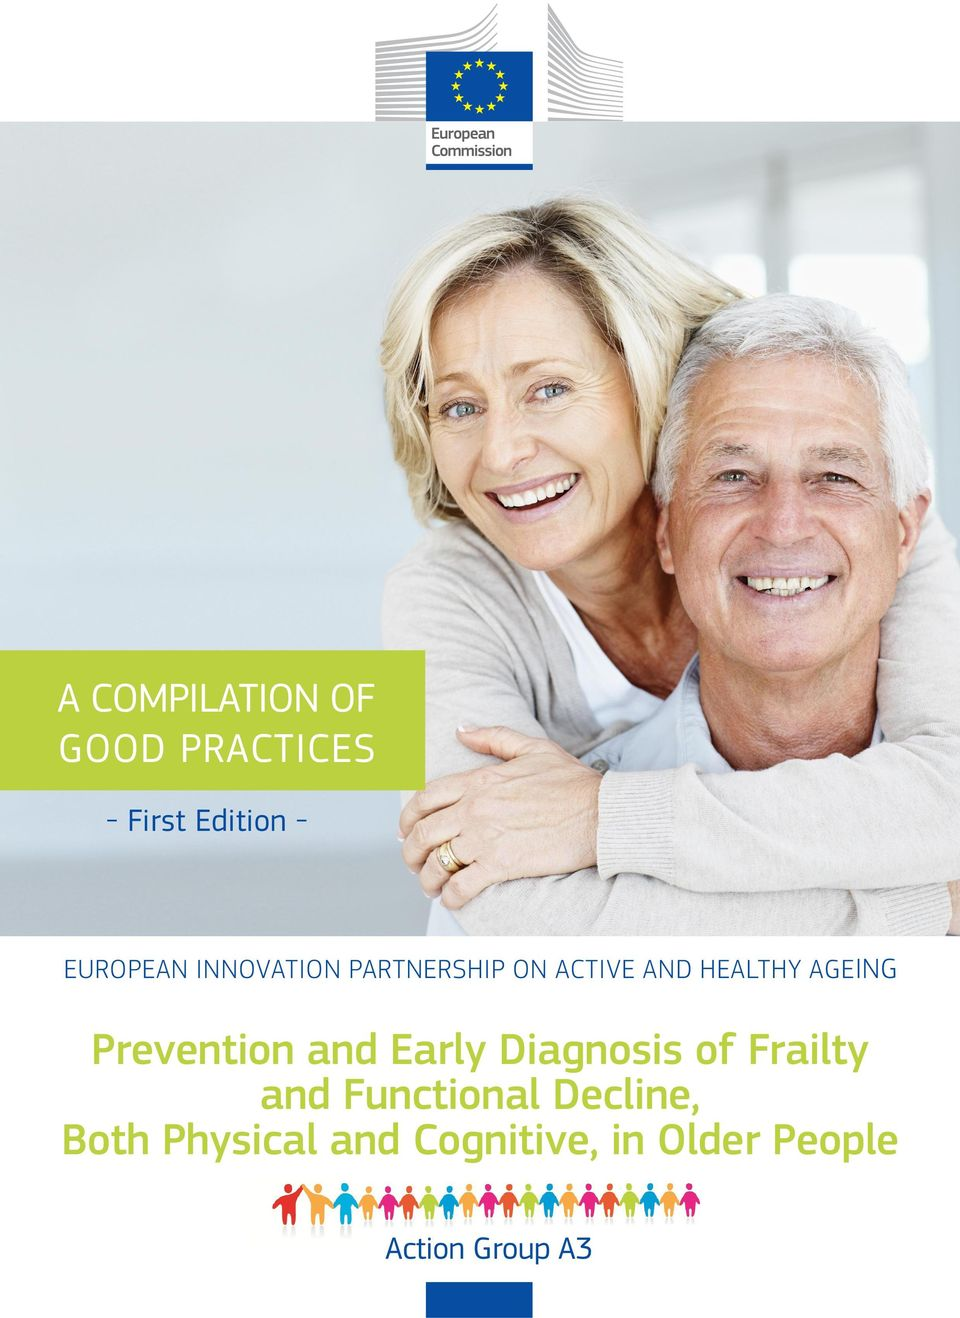 Prevention and Early Diagnosis of Frailty and Functional